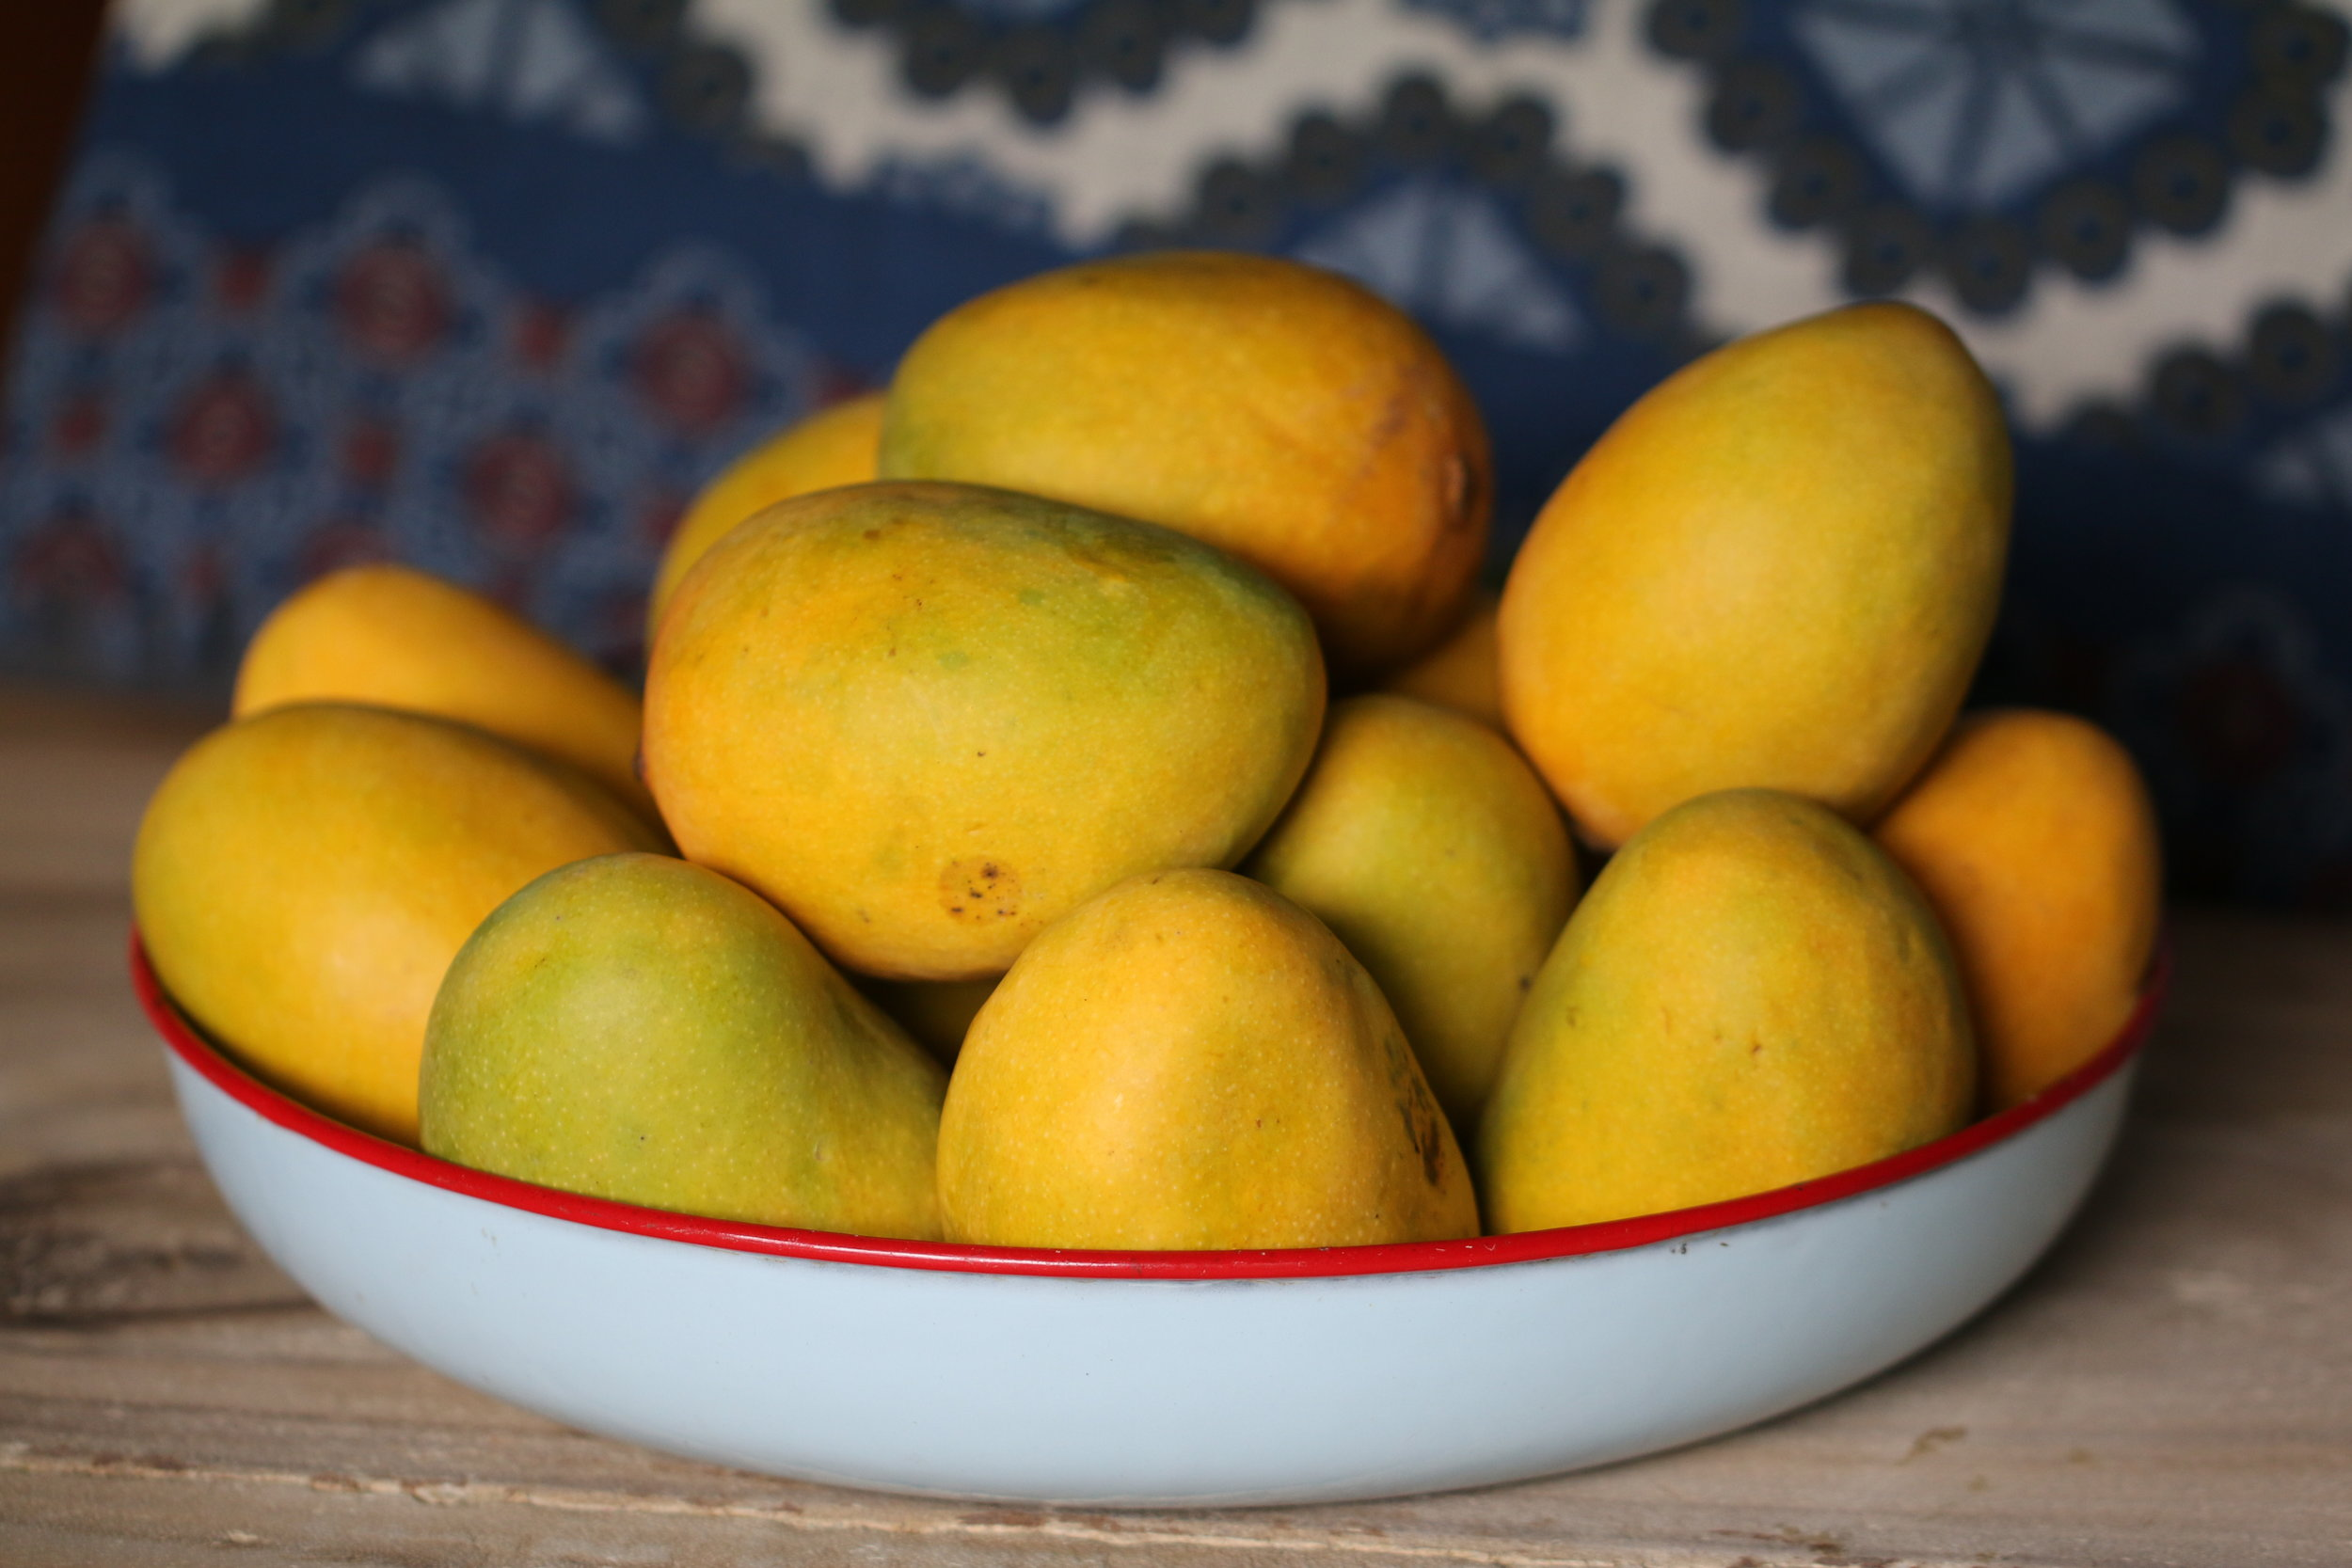 mangoes - 78 percent of mango samples contained no detectable pesticide residues.No more than two pesticides were detected on any conventionally grown mangoes in USDA tests.